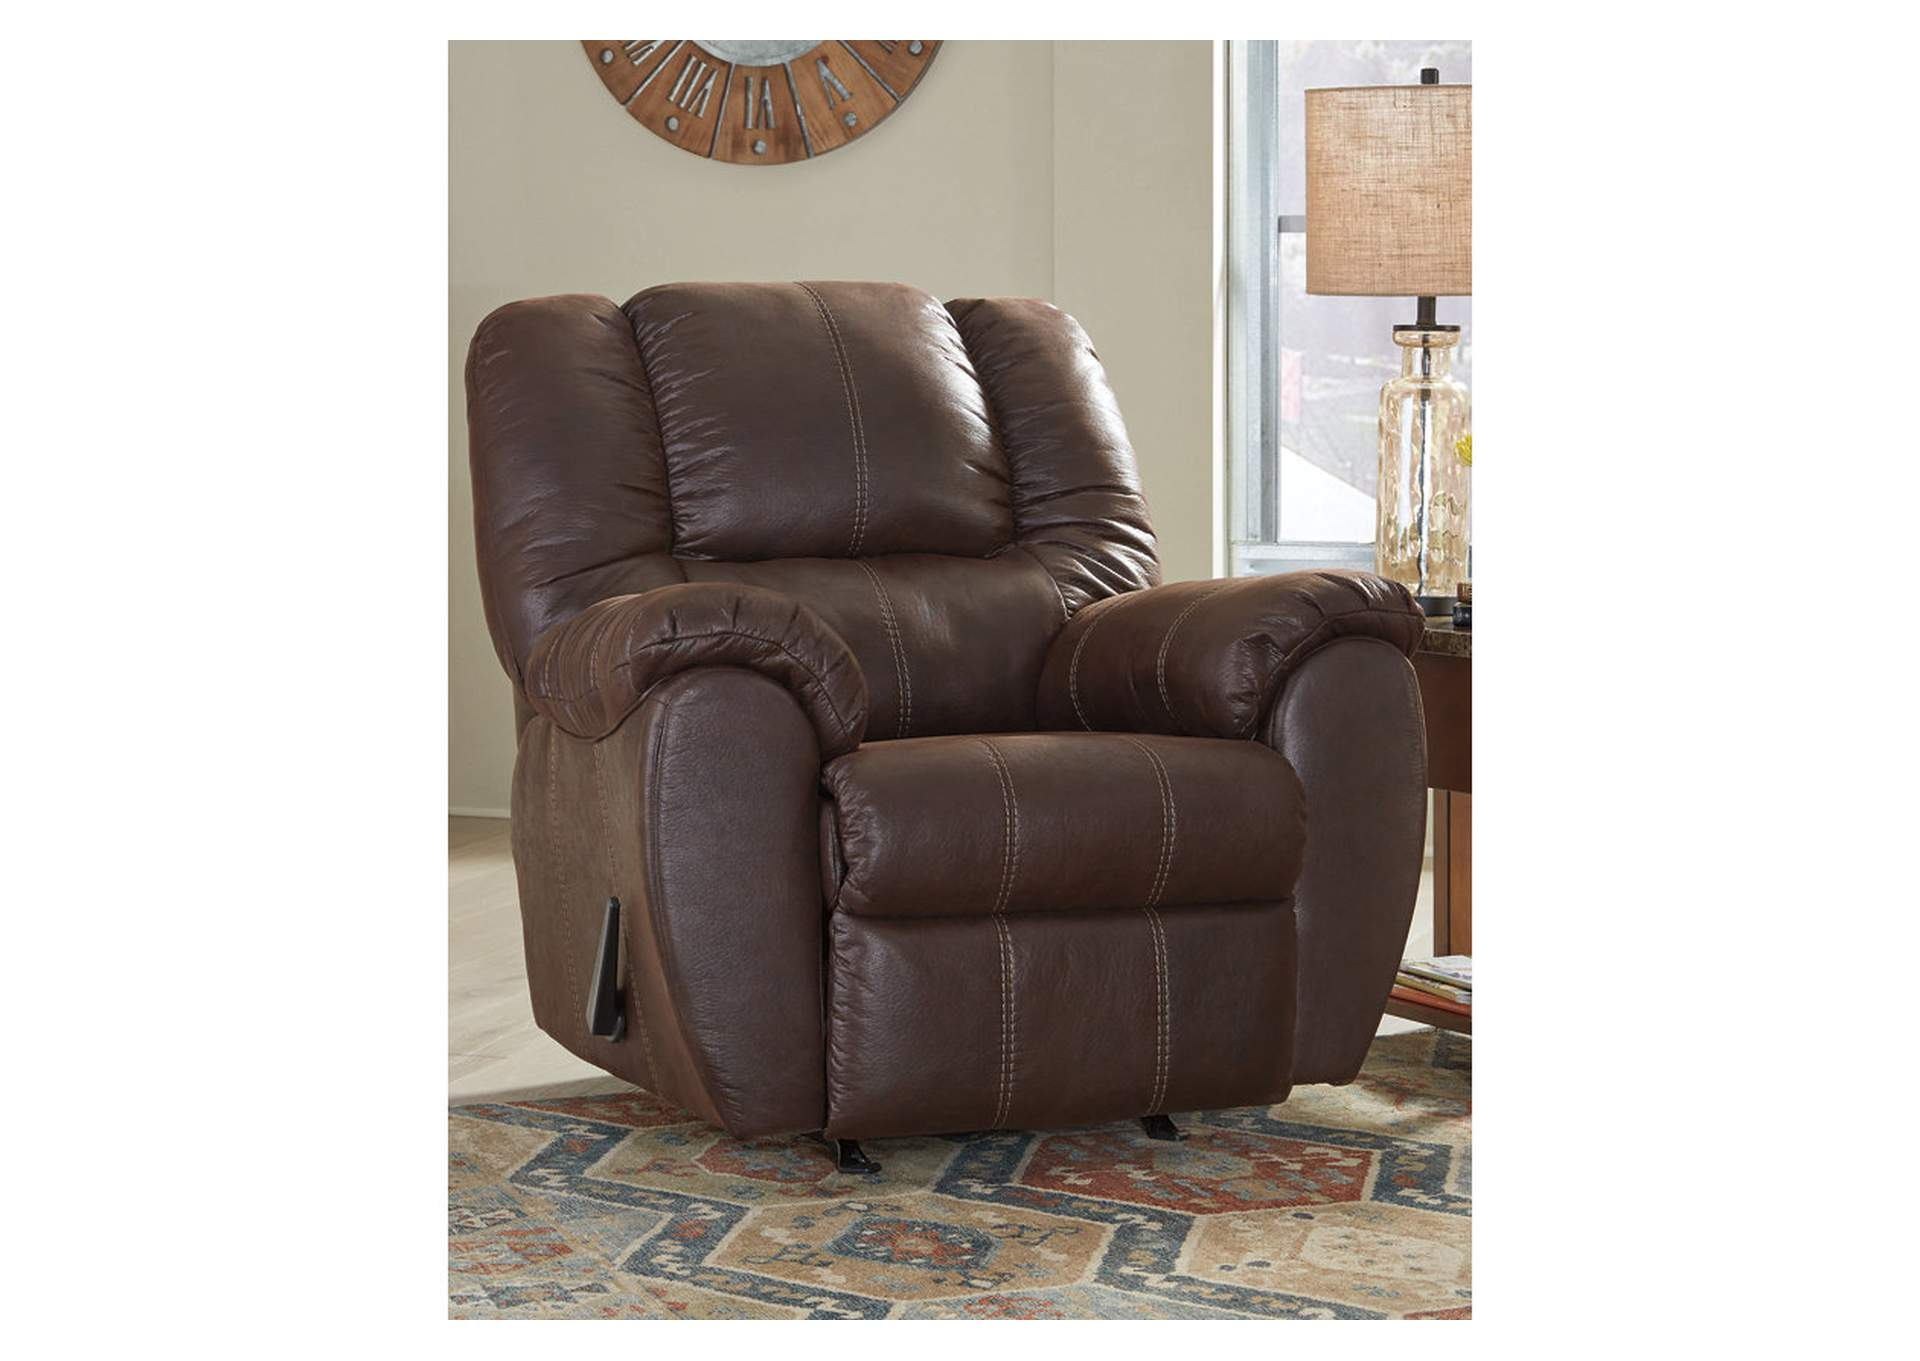 McGann Walnut Recliner,Signature Design By Ashley